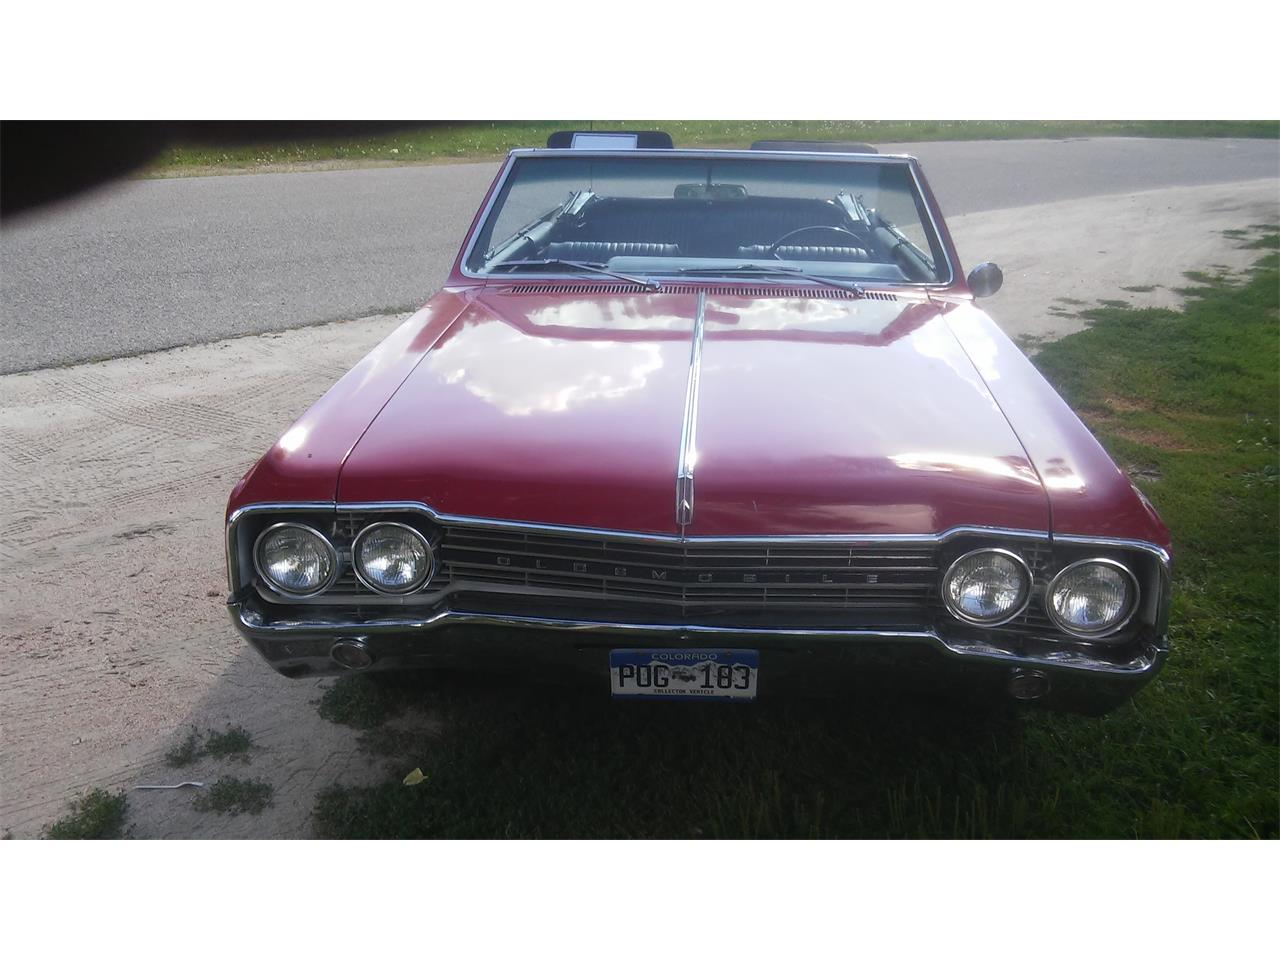 Large Picture of Classic '65 Cutlass located in Colorado - $16,500.00 Offered by a Private Seller - NNJK